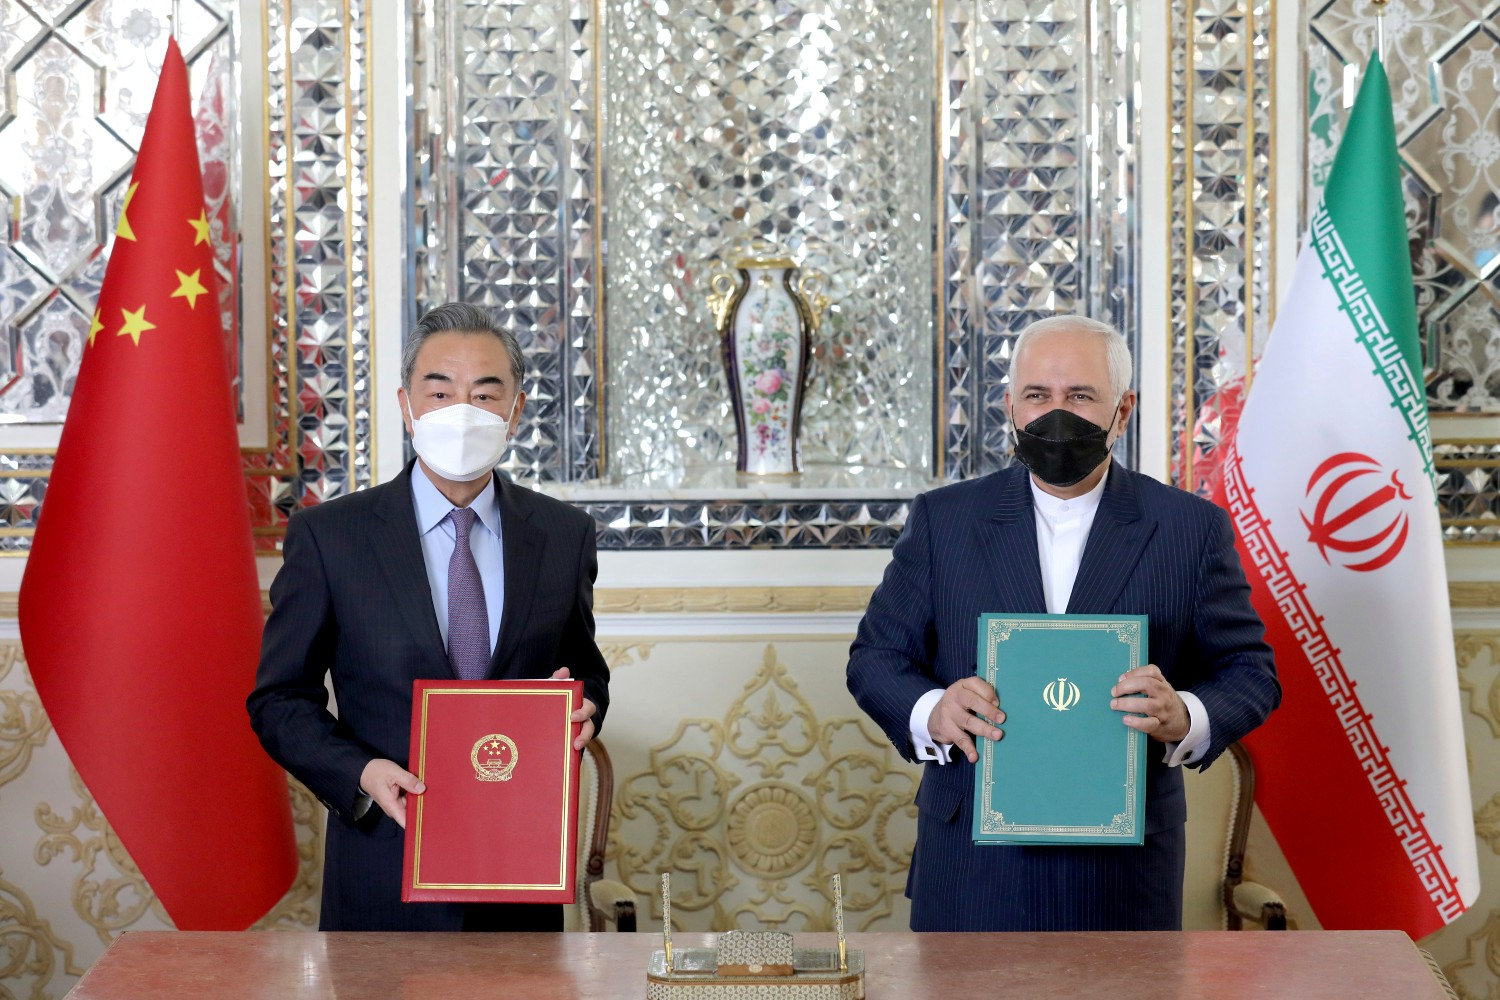 Iranian Foreign Minister Mohammad Javad Zarif (right) and Wang Yi pose after signing a 25-year strategic cooperation agreement in Tehran, Iran on March 27, 2021.AP Photo/Ebrahim Noroozi